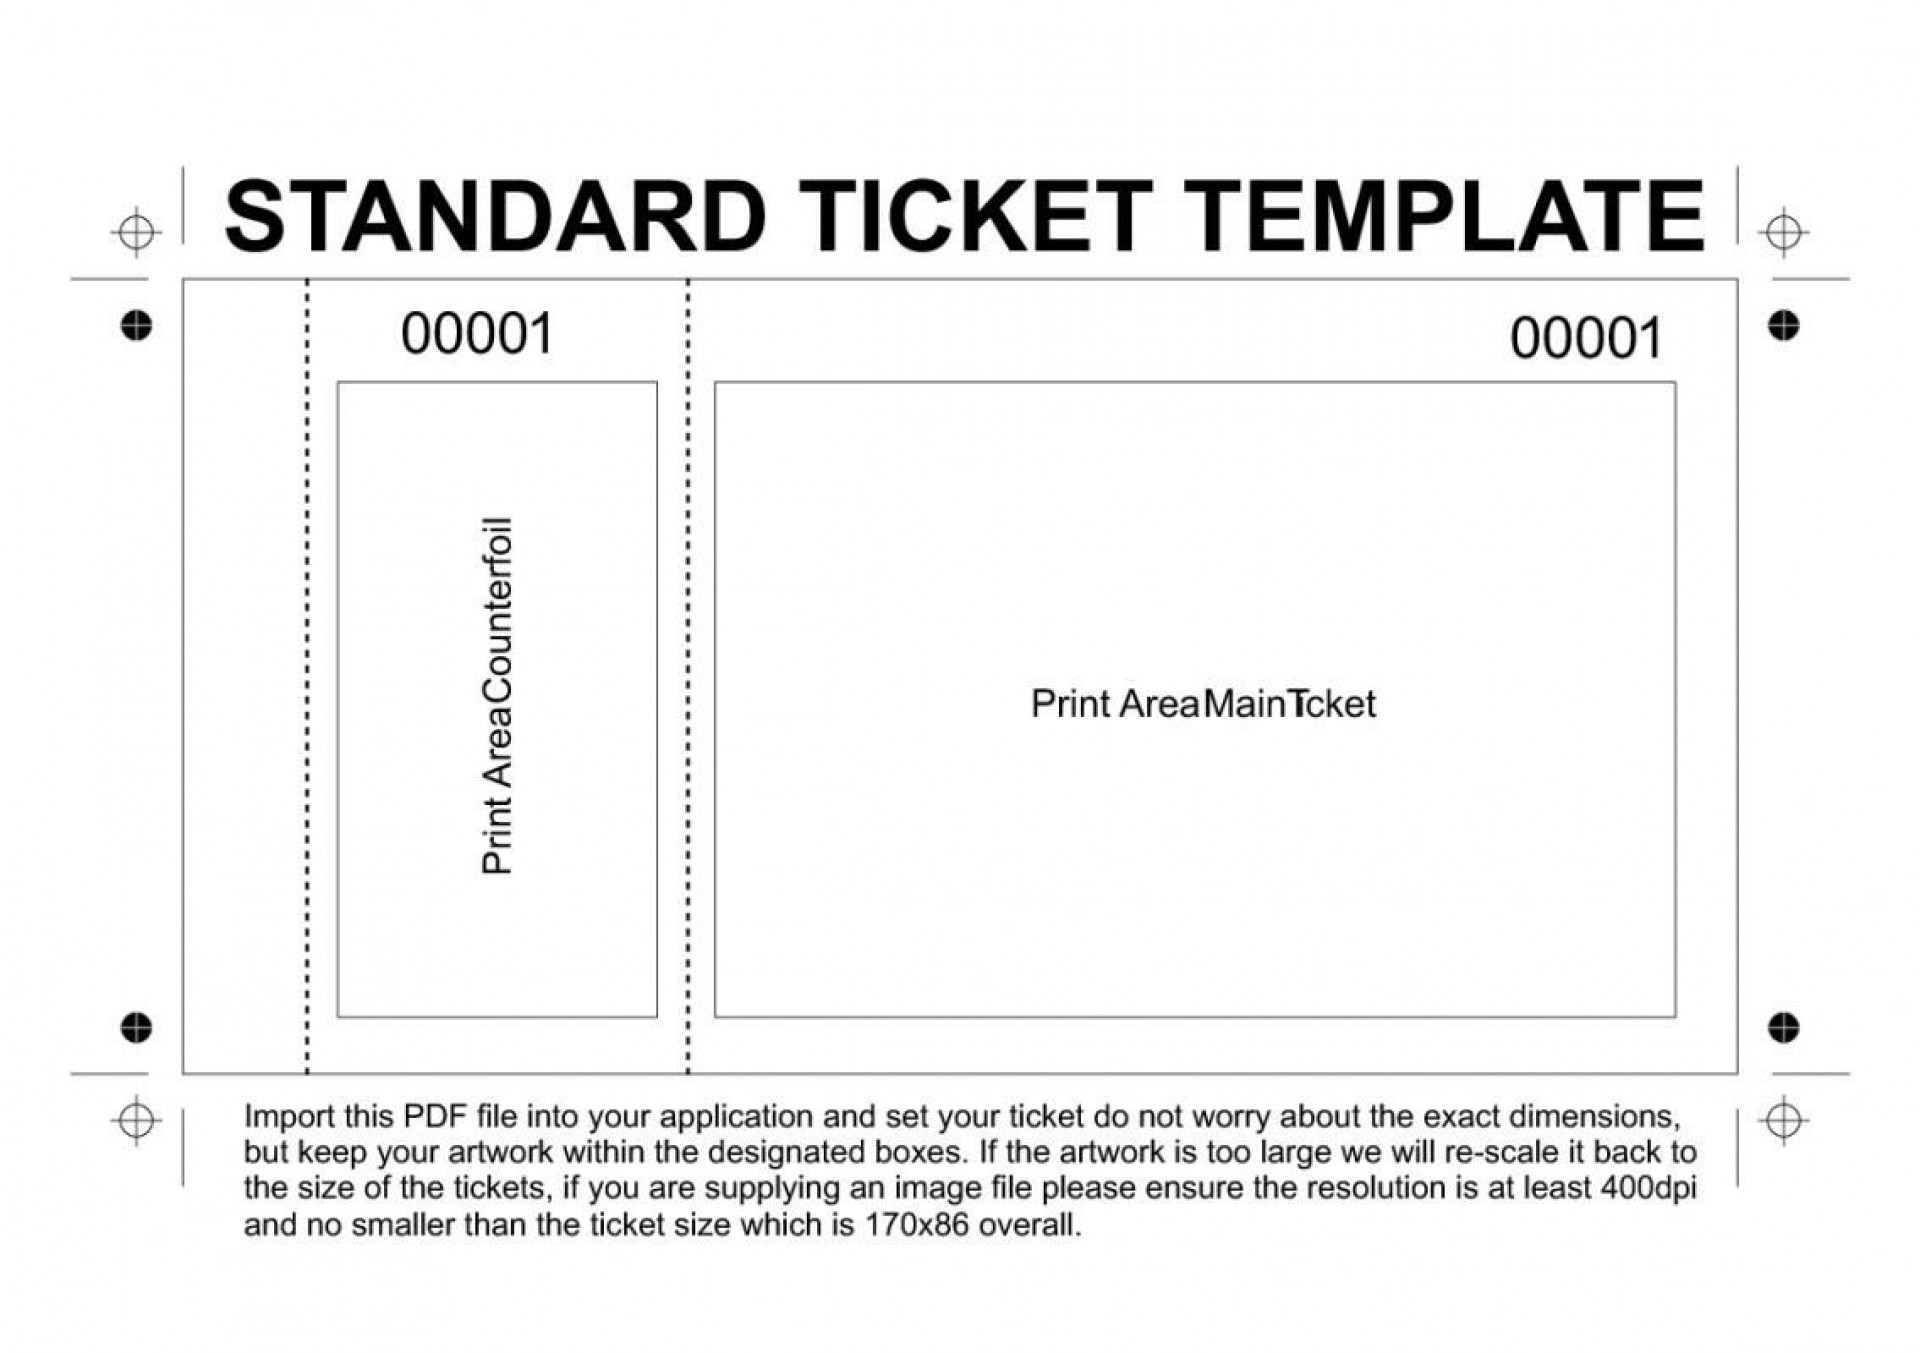 002 Impressive Free Printable Ticket Template Sample  Raffle Printing Airline For Gift Concert1920